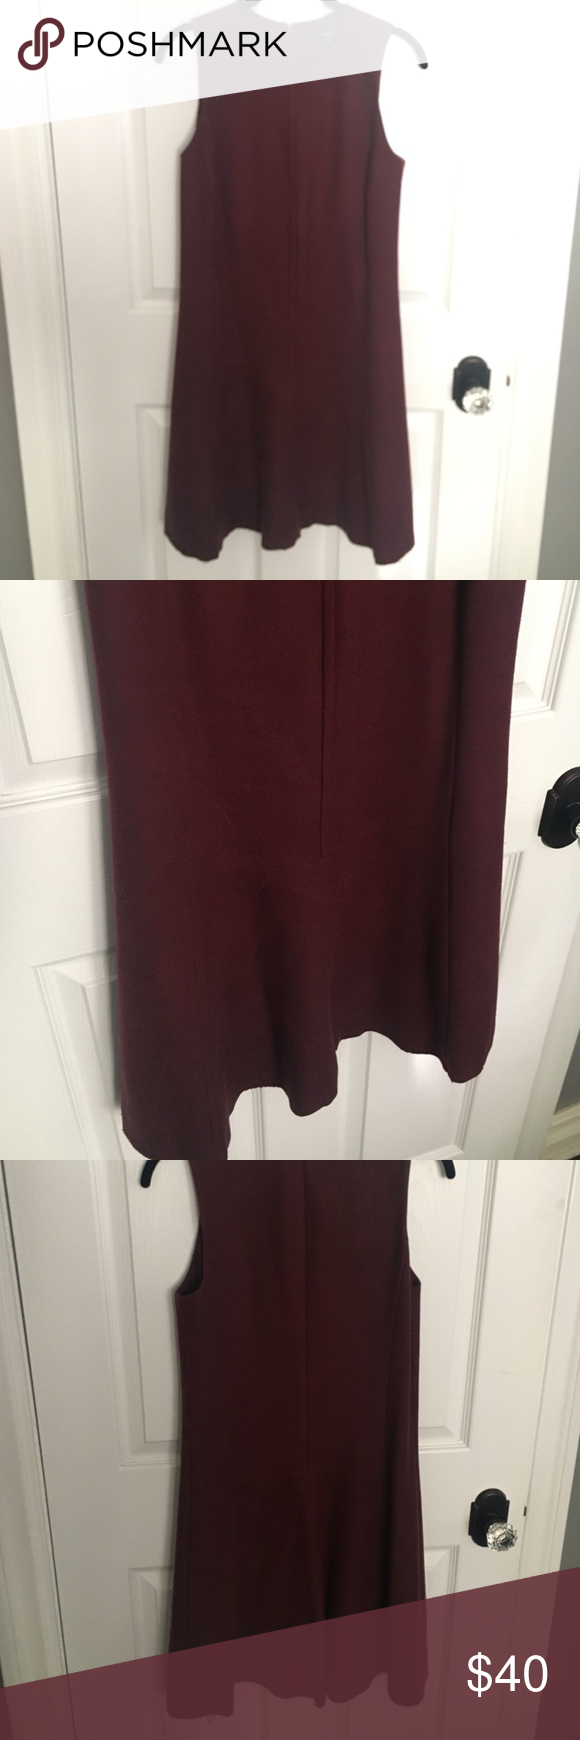 FINAL SALE Madewell Maroon Wool Drop Waist Dress Great dress! Looks awesome with a shirt underneath or a cardigan and tights and boots! Just under 36 inches long. Cannot model, will not fit me Madewell Dresses Midi